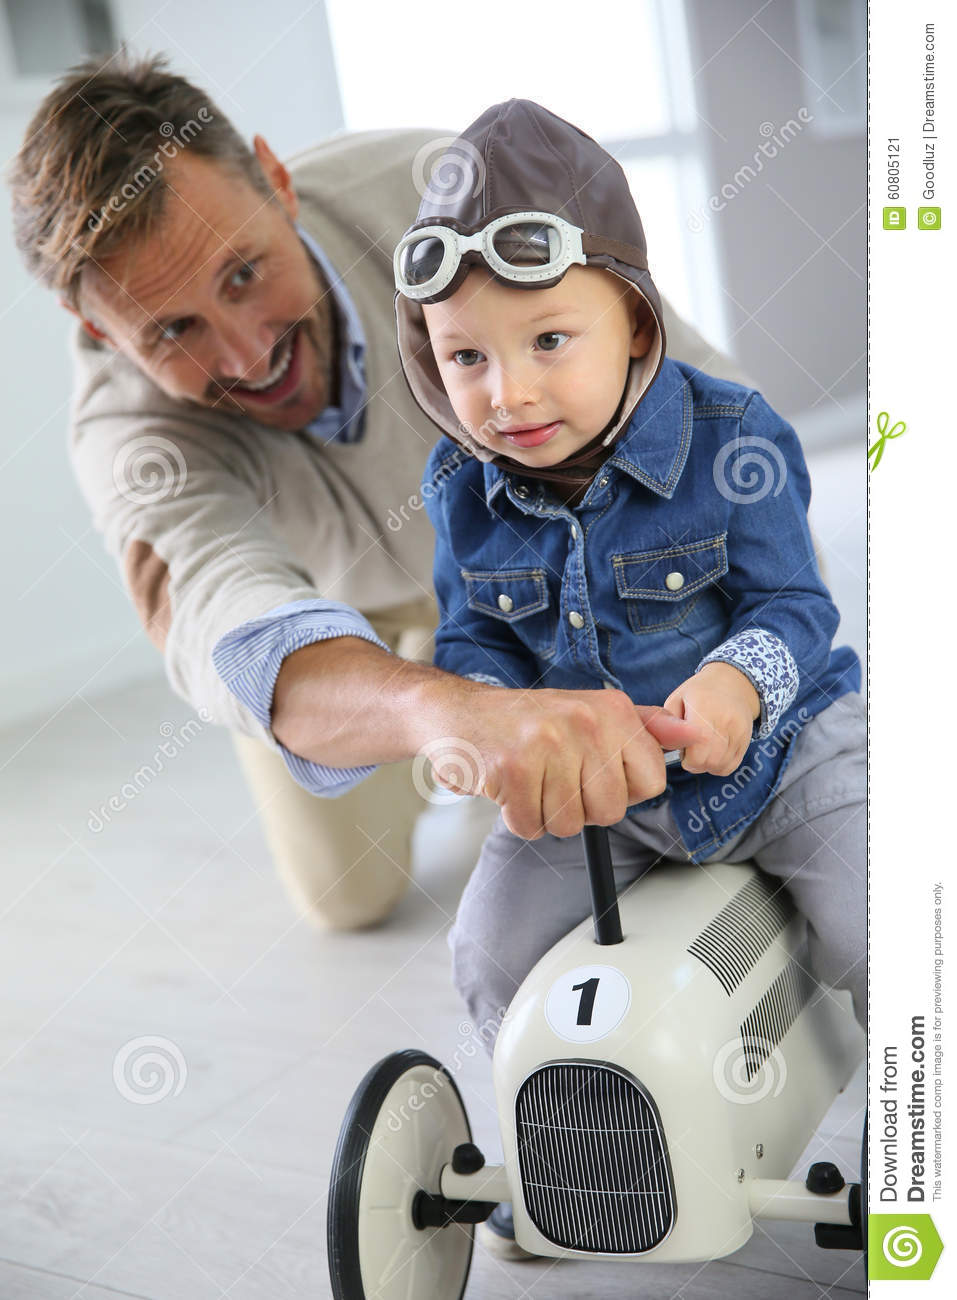 Boy Toys For Dads : Father with son driving retro car toy stock image